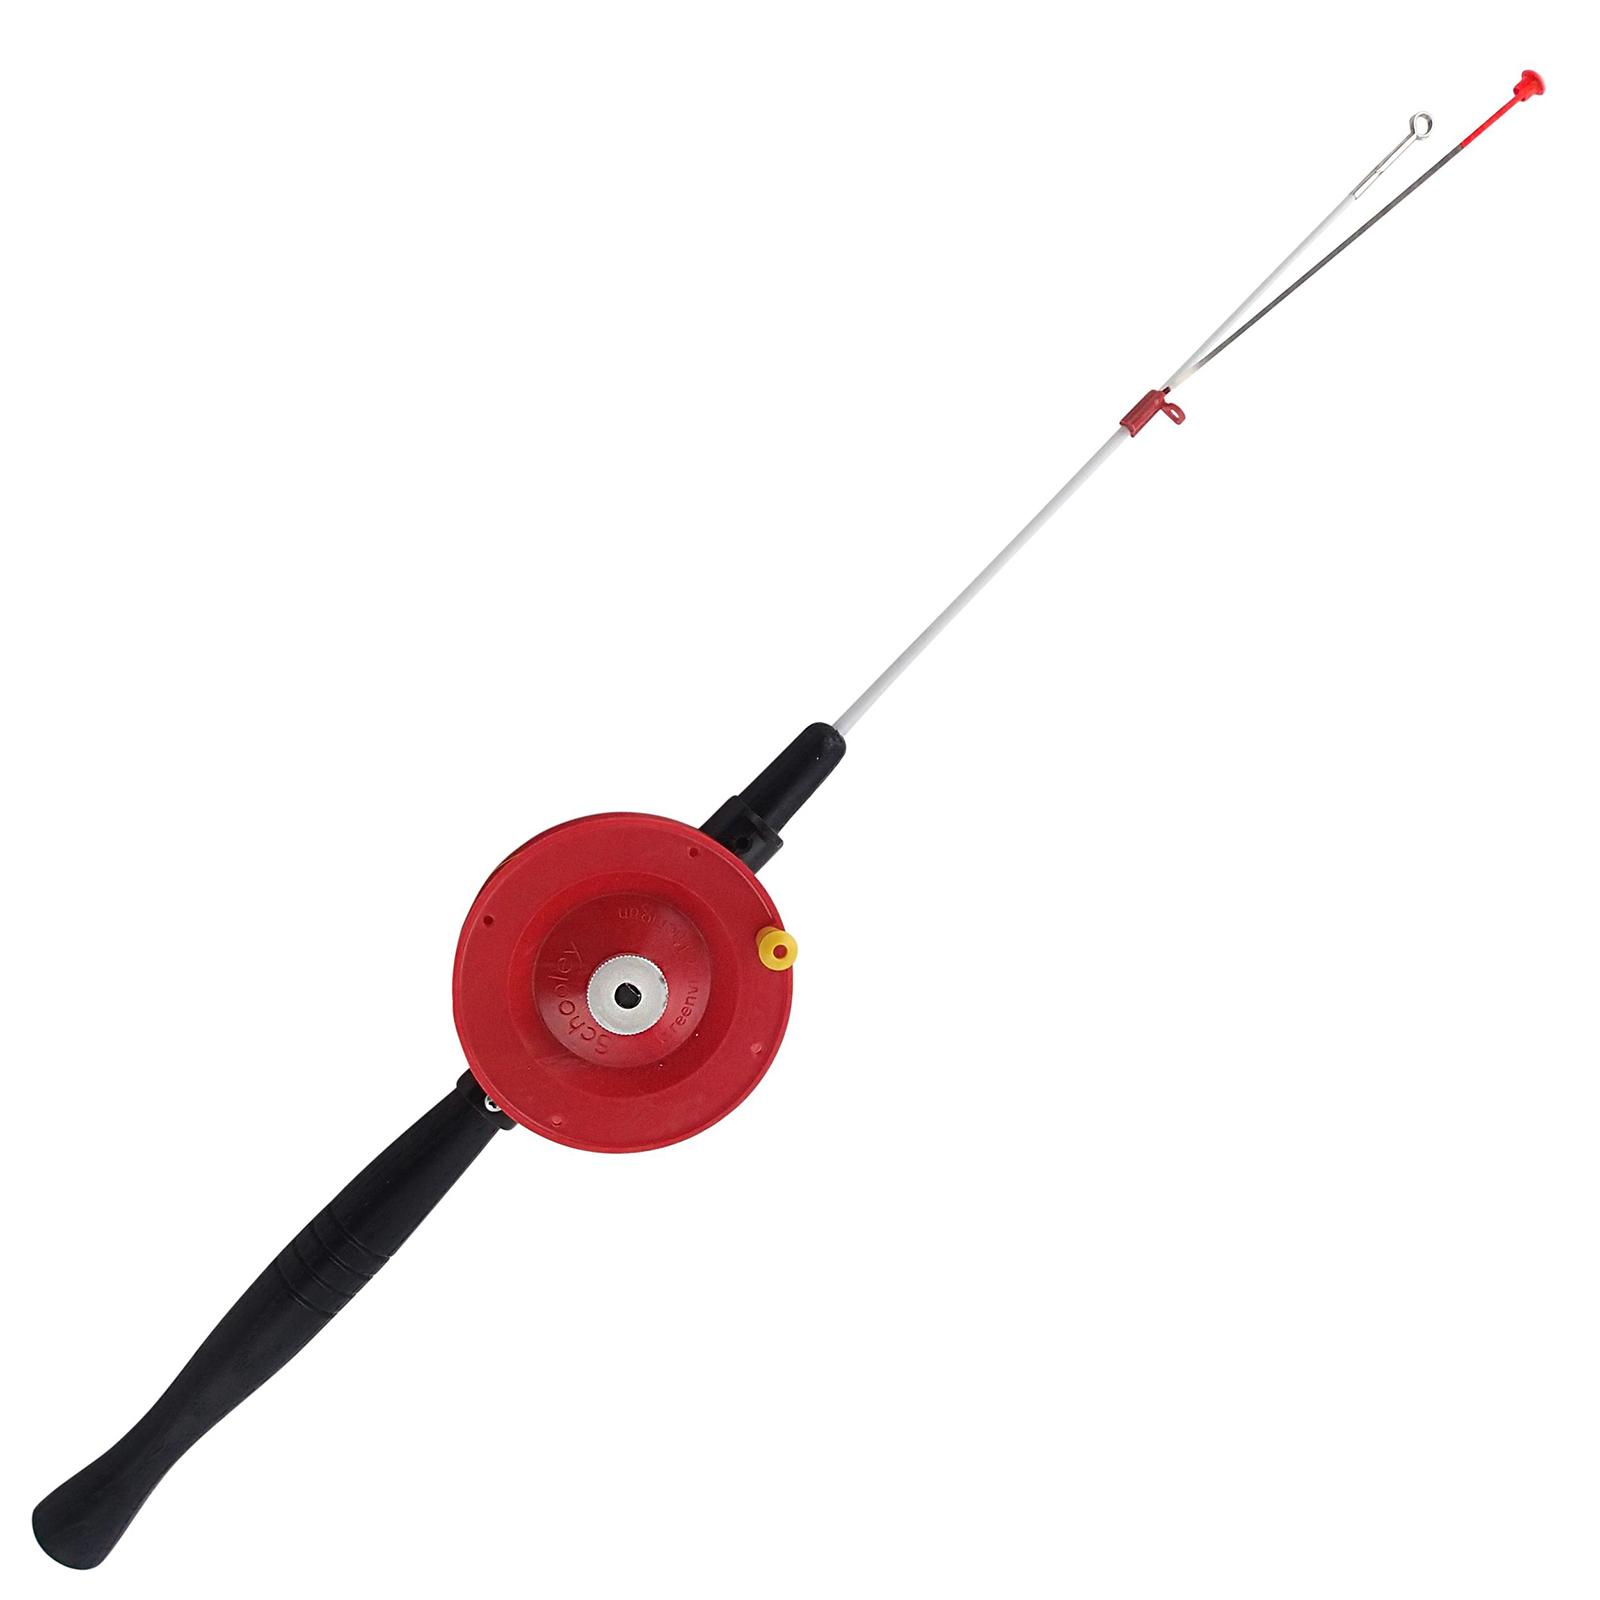 Schooley's Spring Bobber Pole, Reel and Accessories